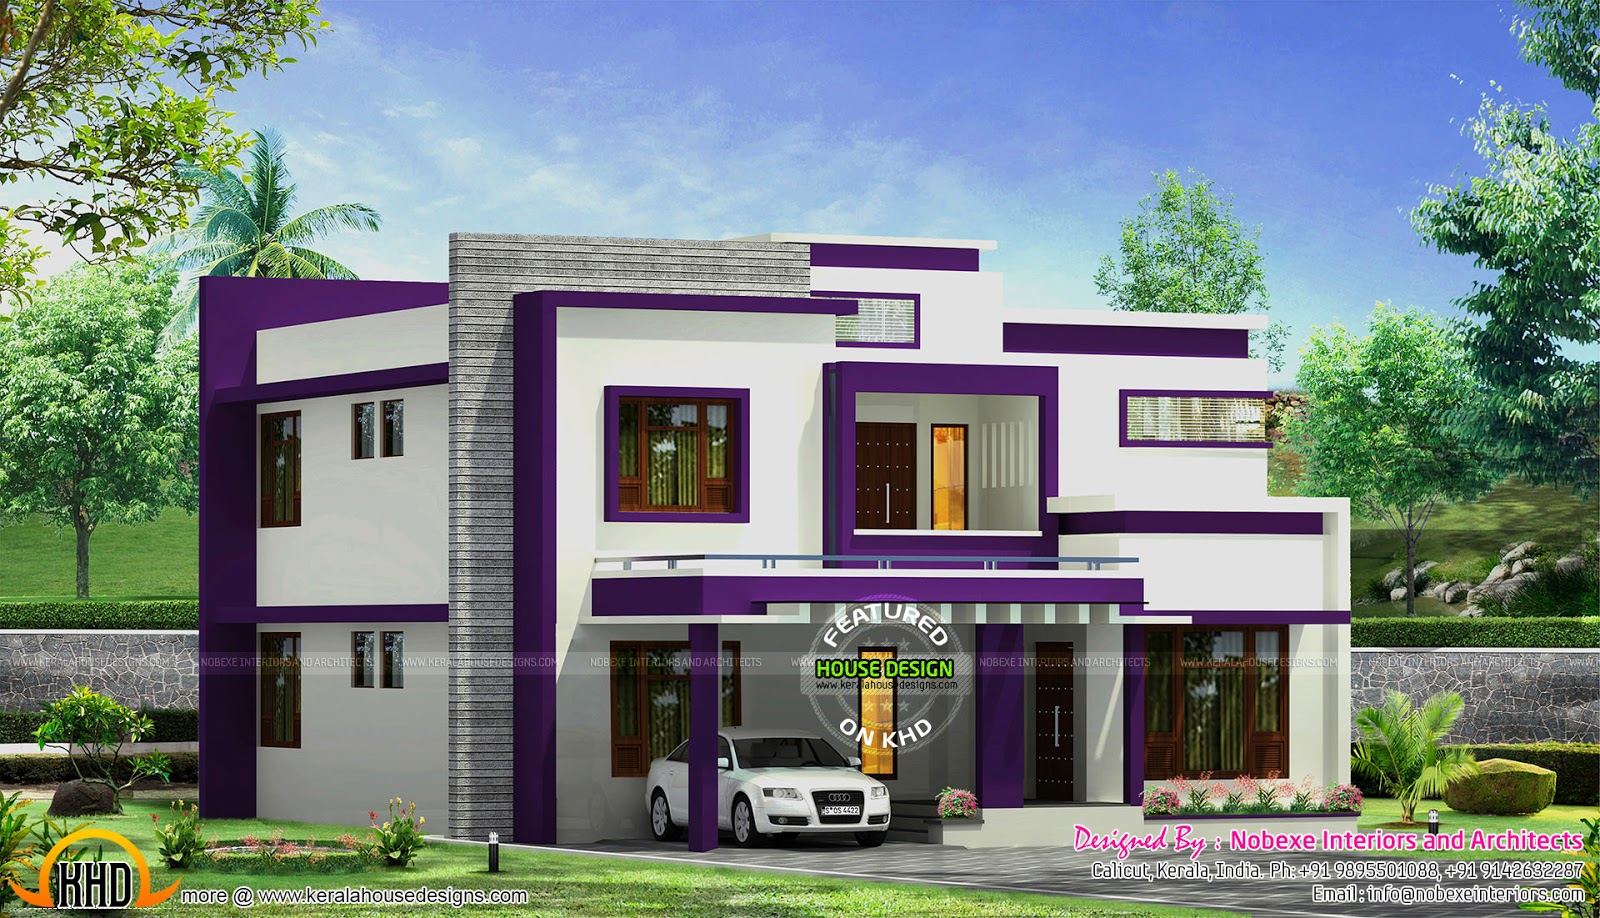 Contemporary home design by nobexe interiors kerala home for Home plans and designs with photos